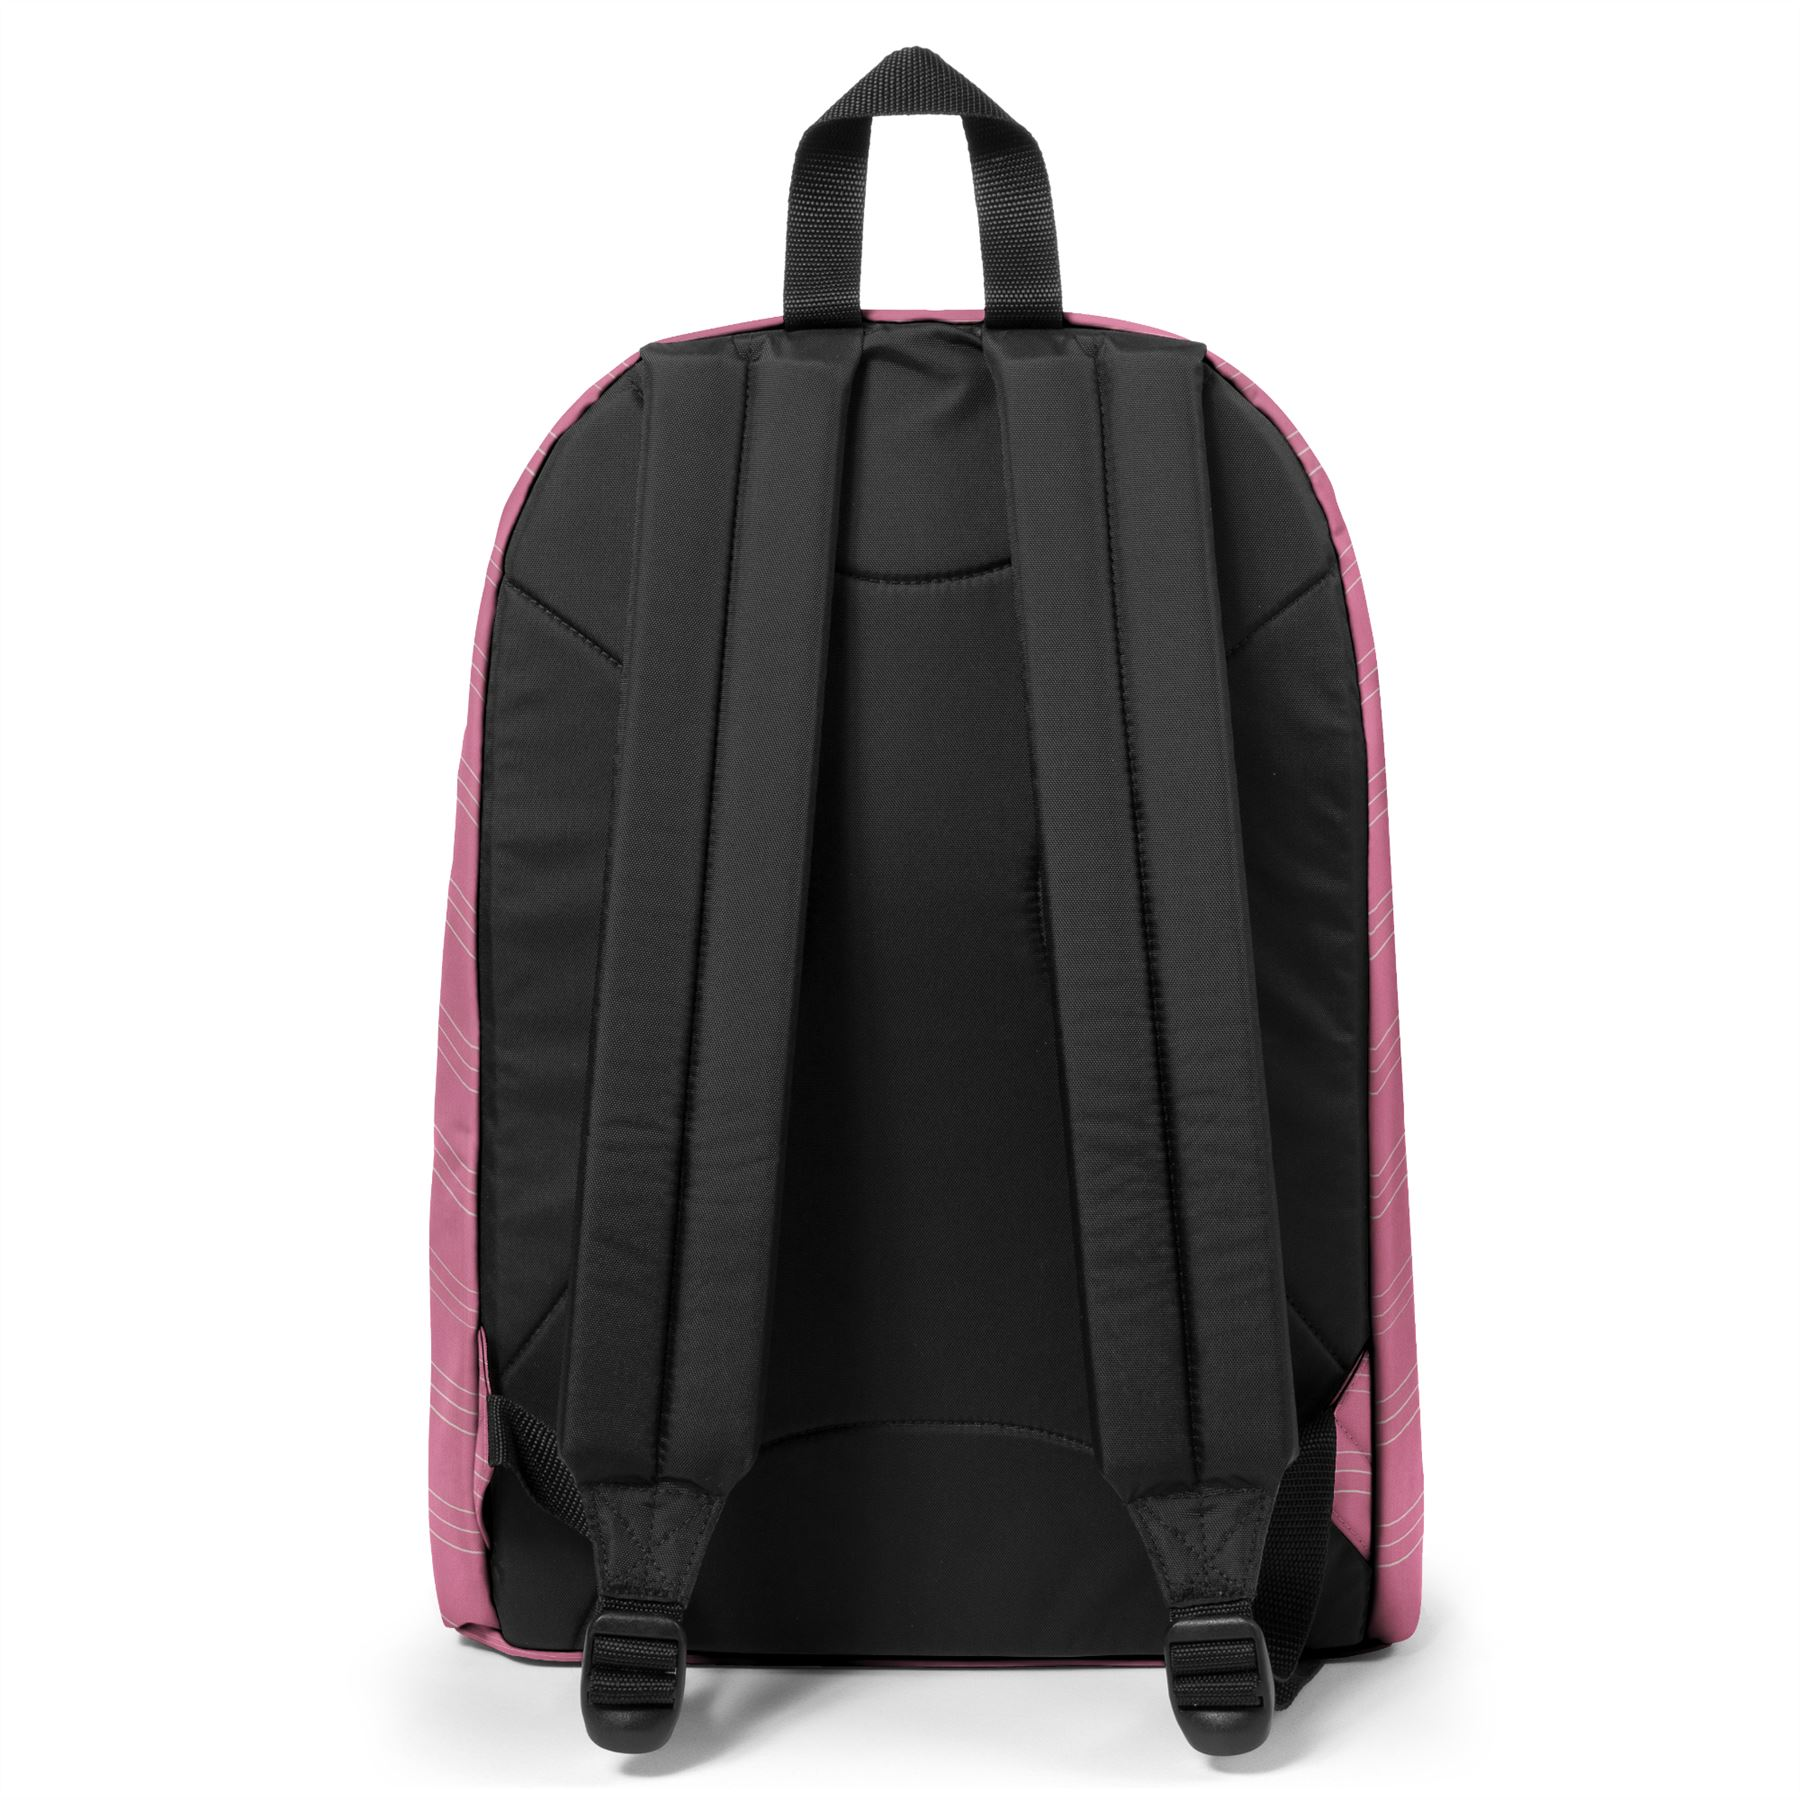 e1c8a637f26 Eastpak Out of Office Backpack with Laptop Slot - School ...